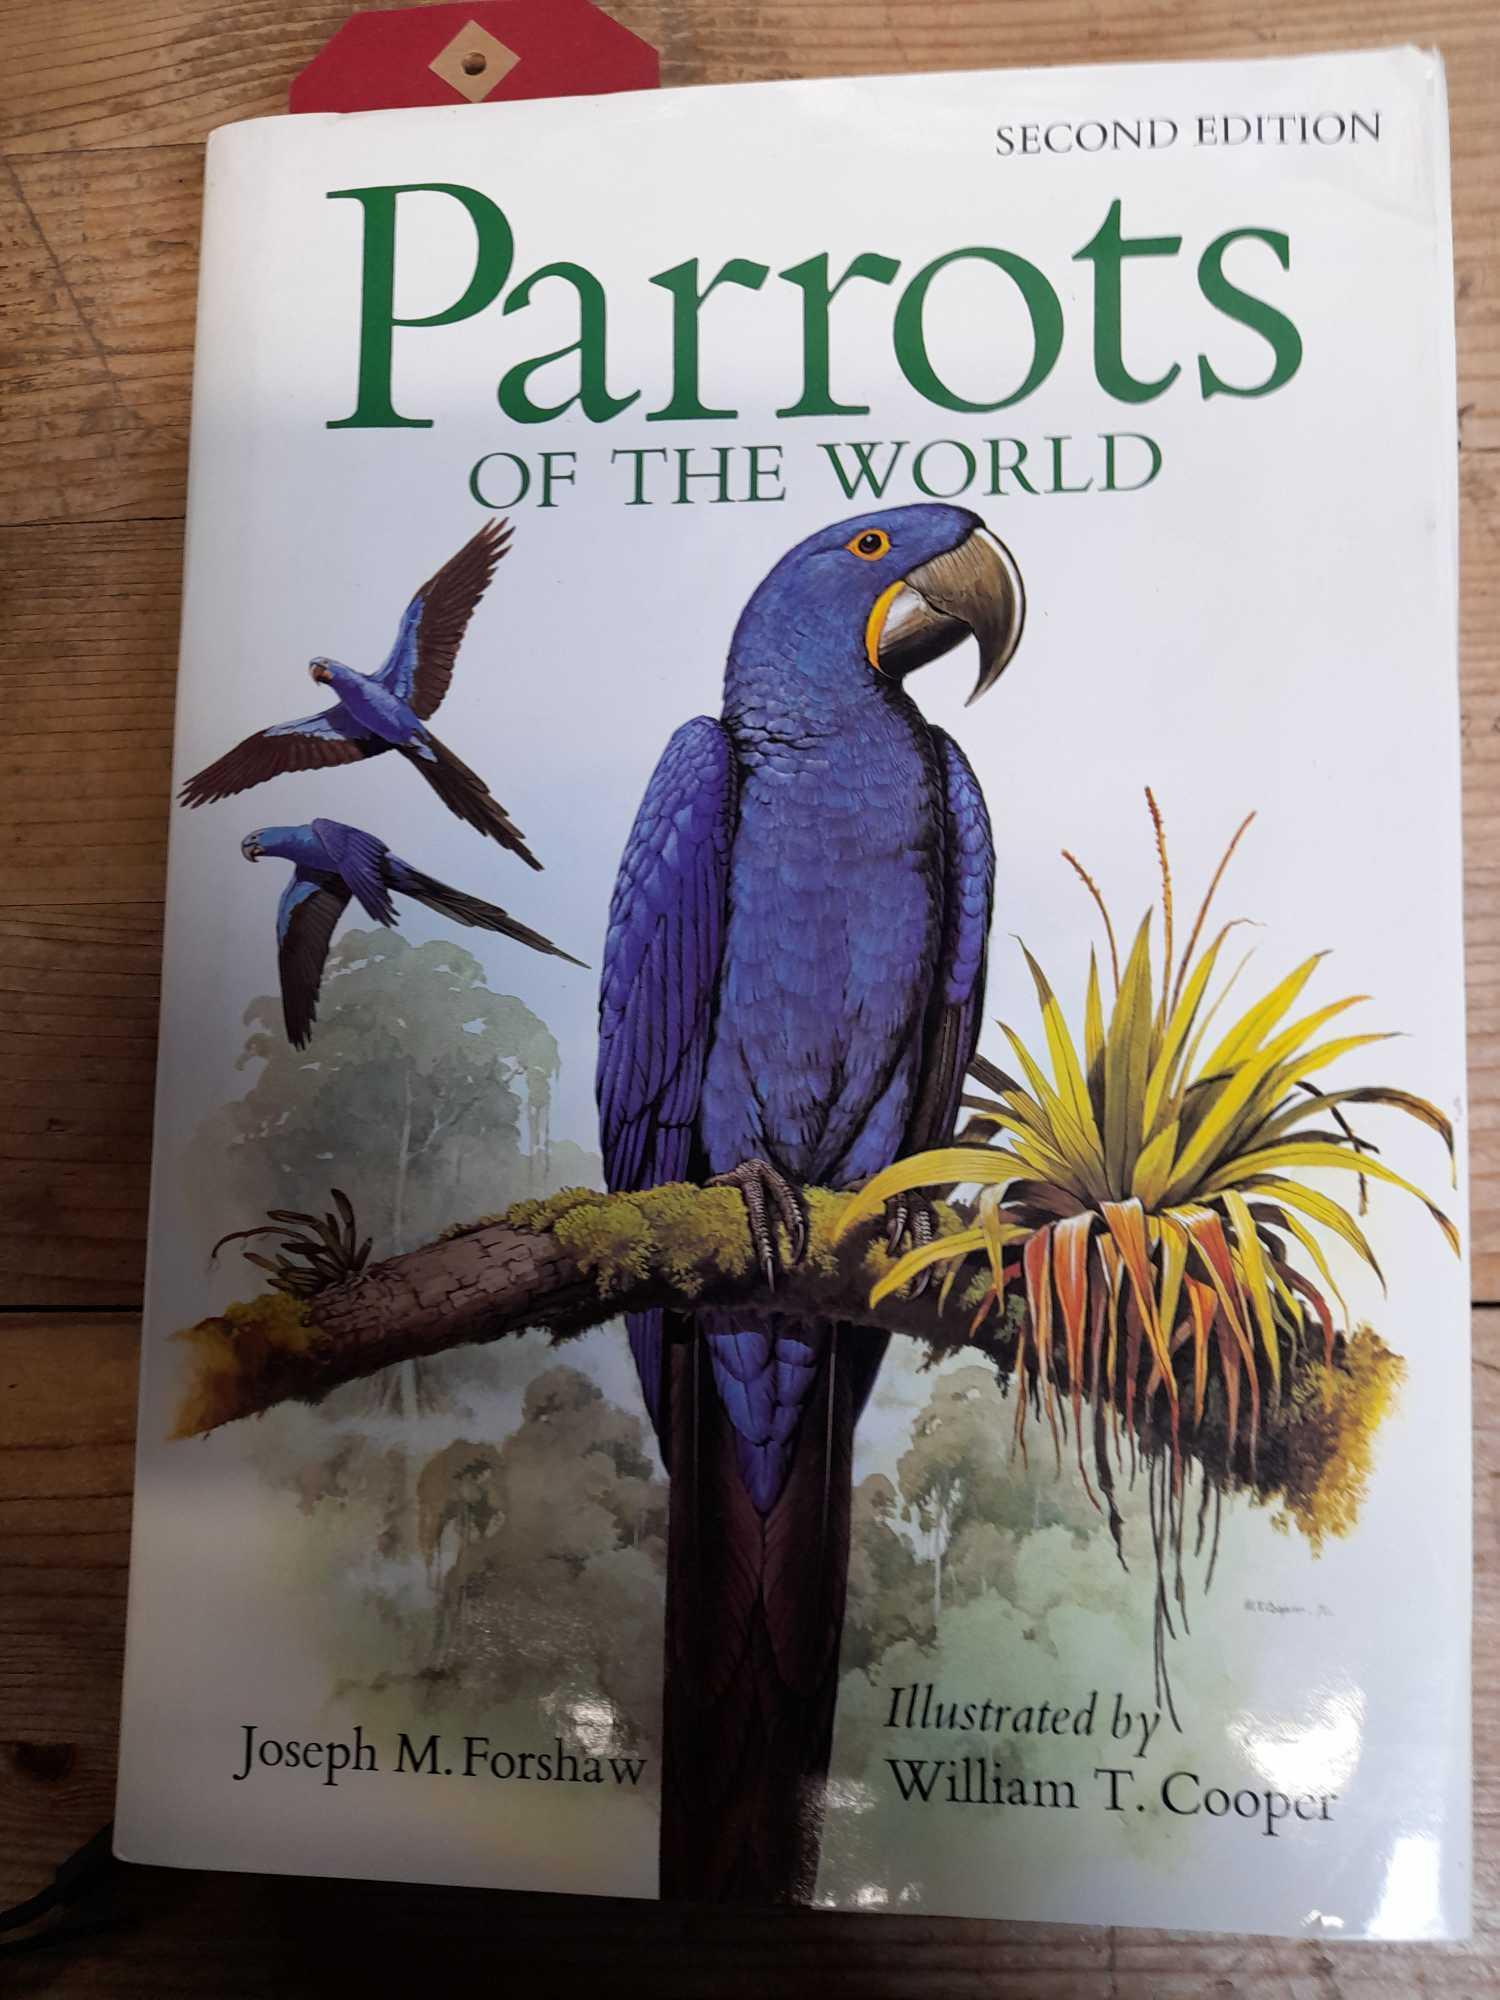 3 PARROT BOOKS - Image 8 of 20